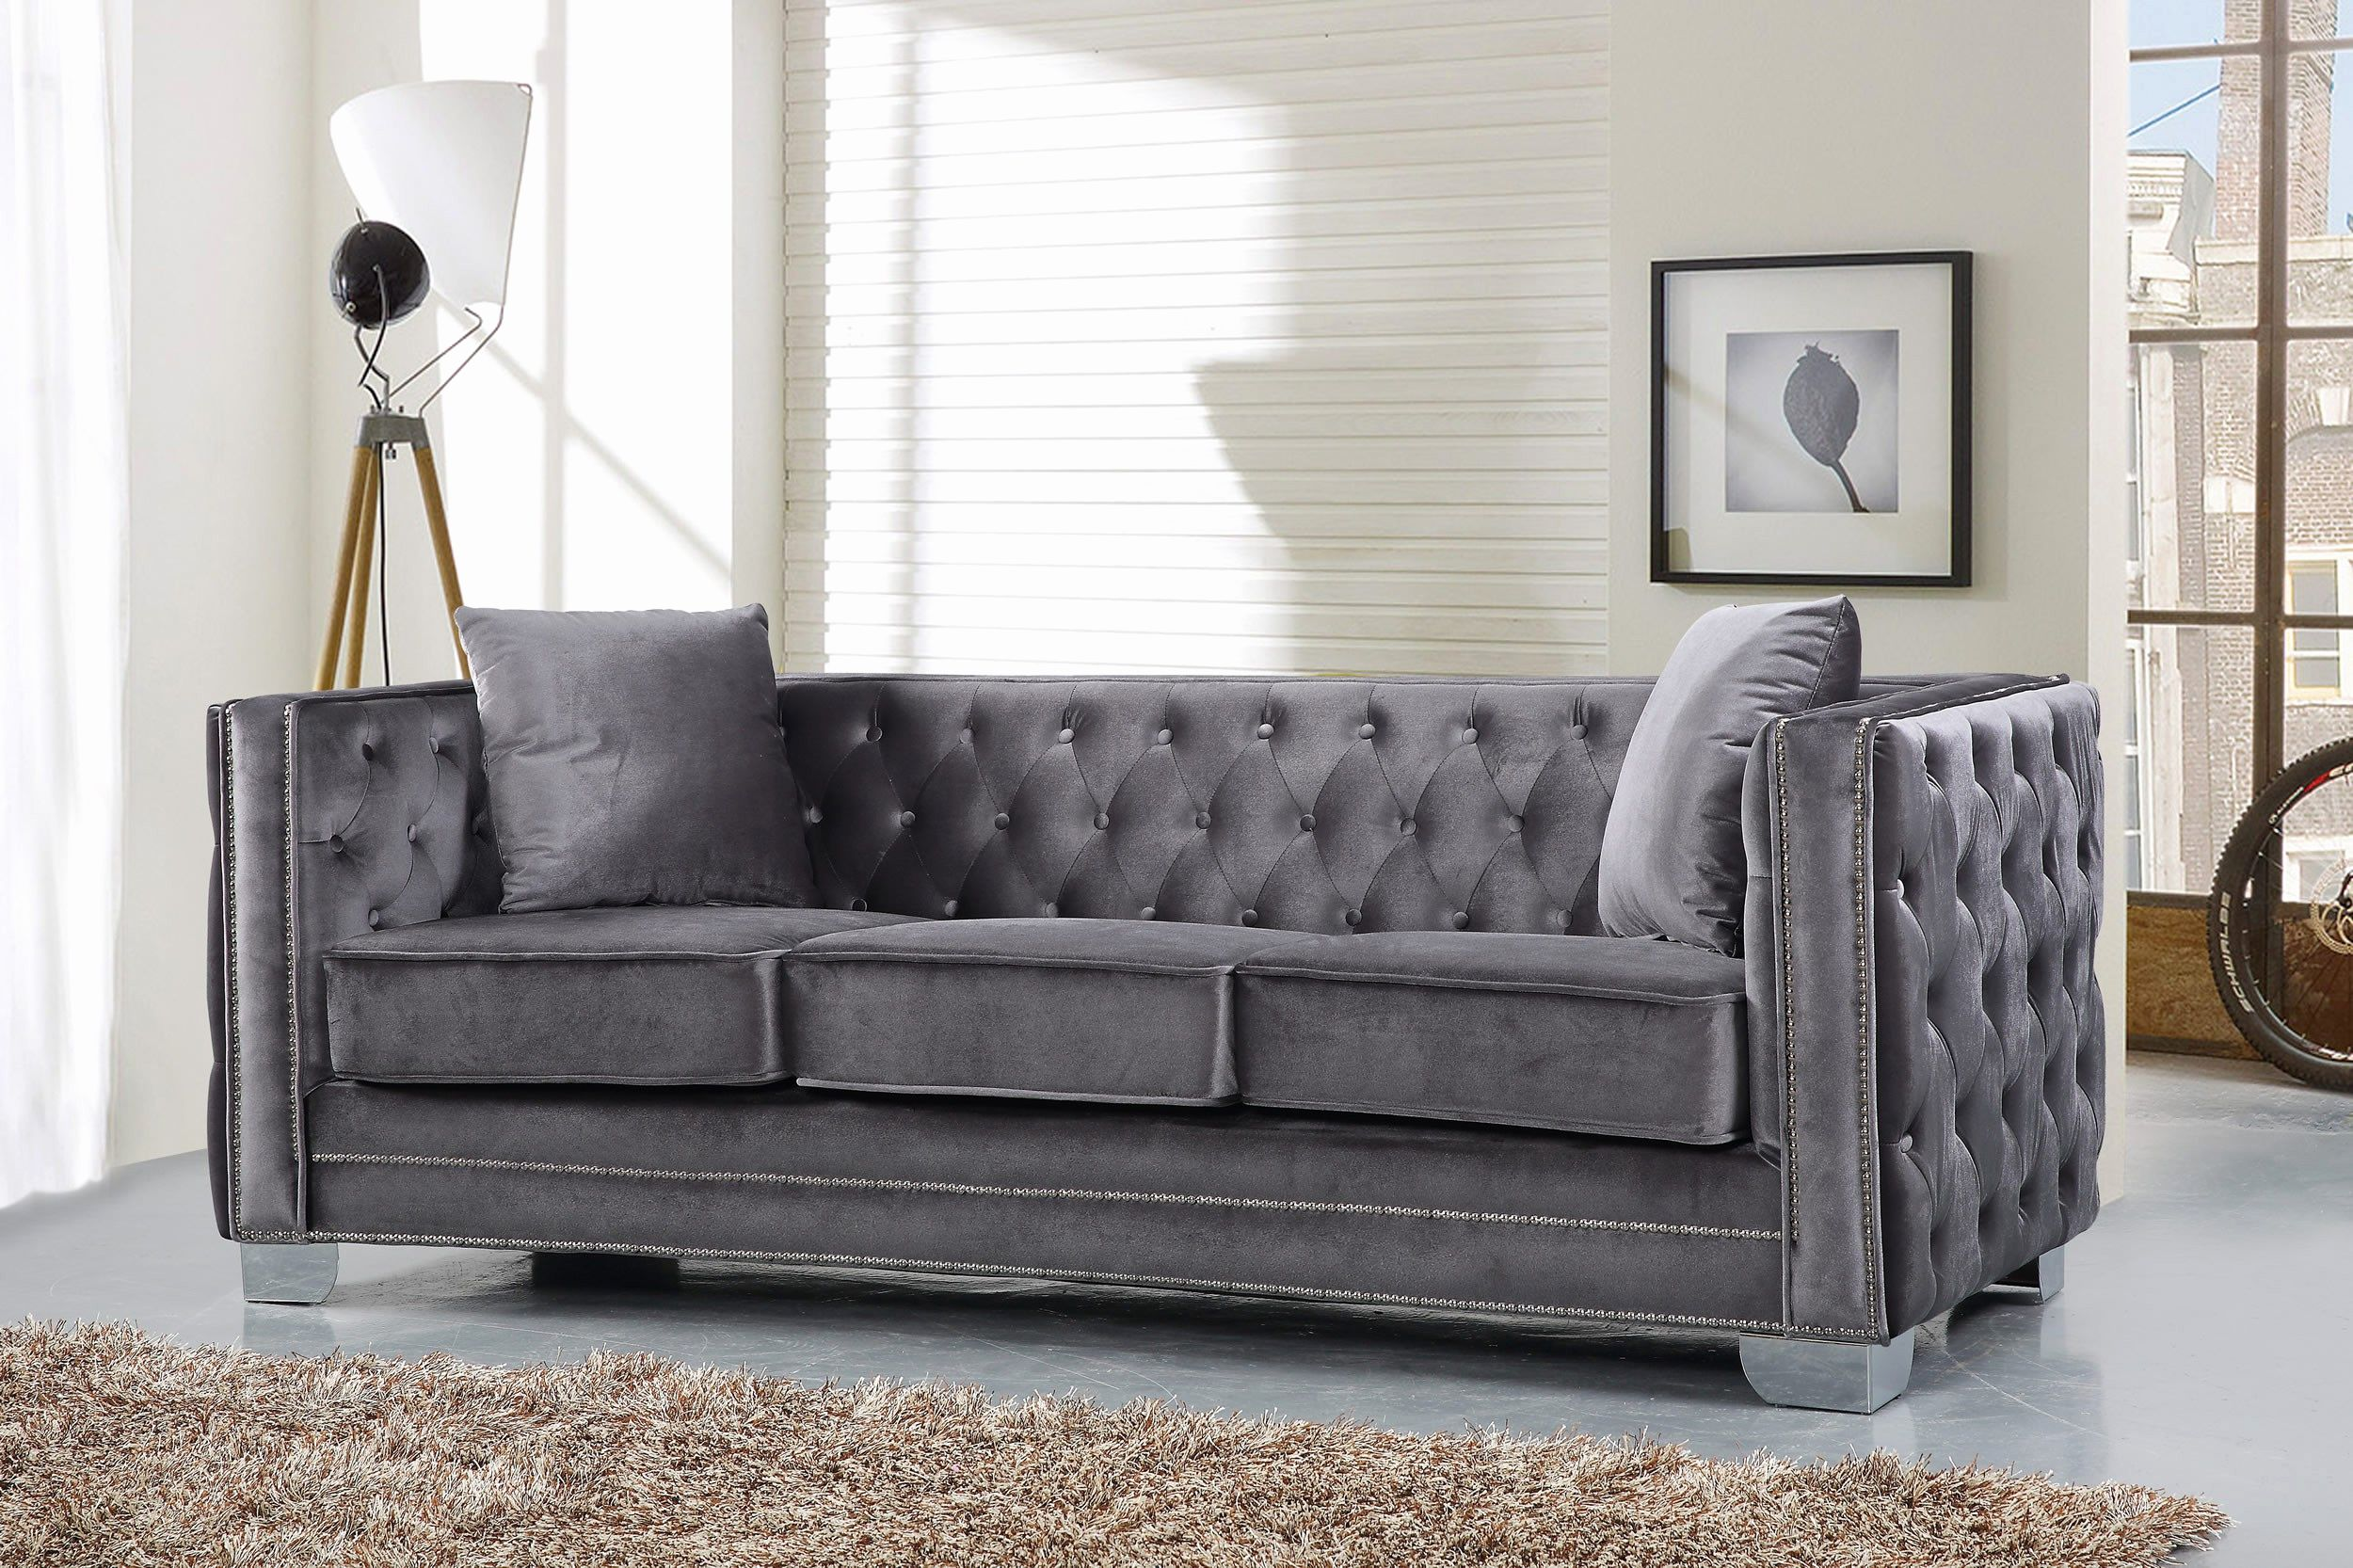 Elegant Velvet Tufted Sleeper Sofa Pics Velvet Tufted Sleeper Sofa Lovely Furniture Light Grey Tufted So Blue Velvet Sofa Meridian Furniture Modern Tufted Sofa